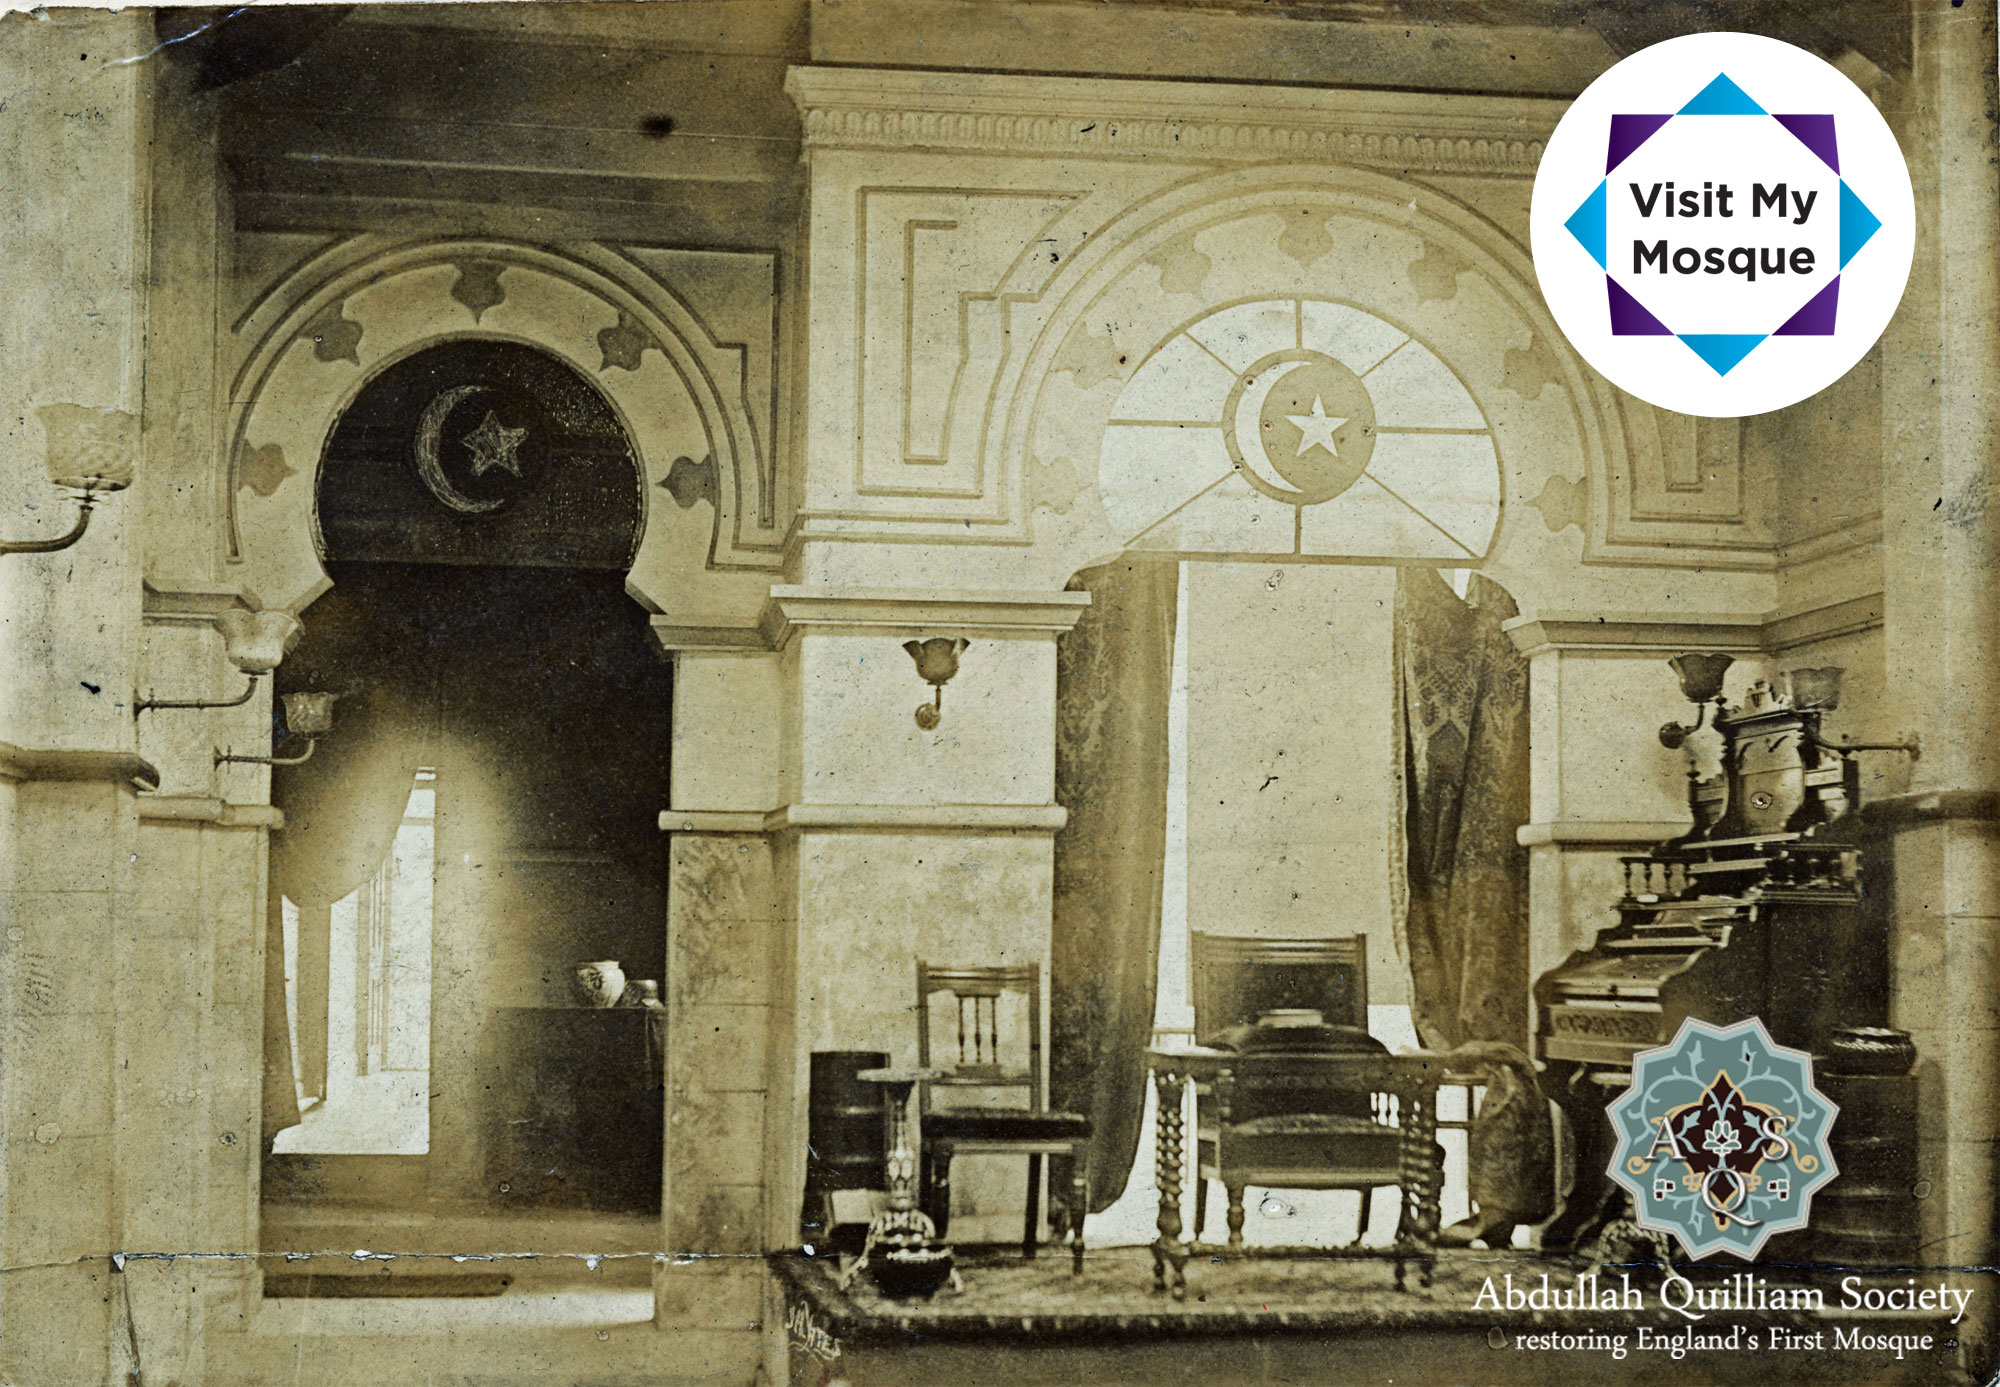 Mosque Interior at the time of Abdullah Quilliam